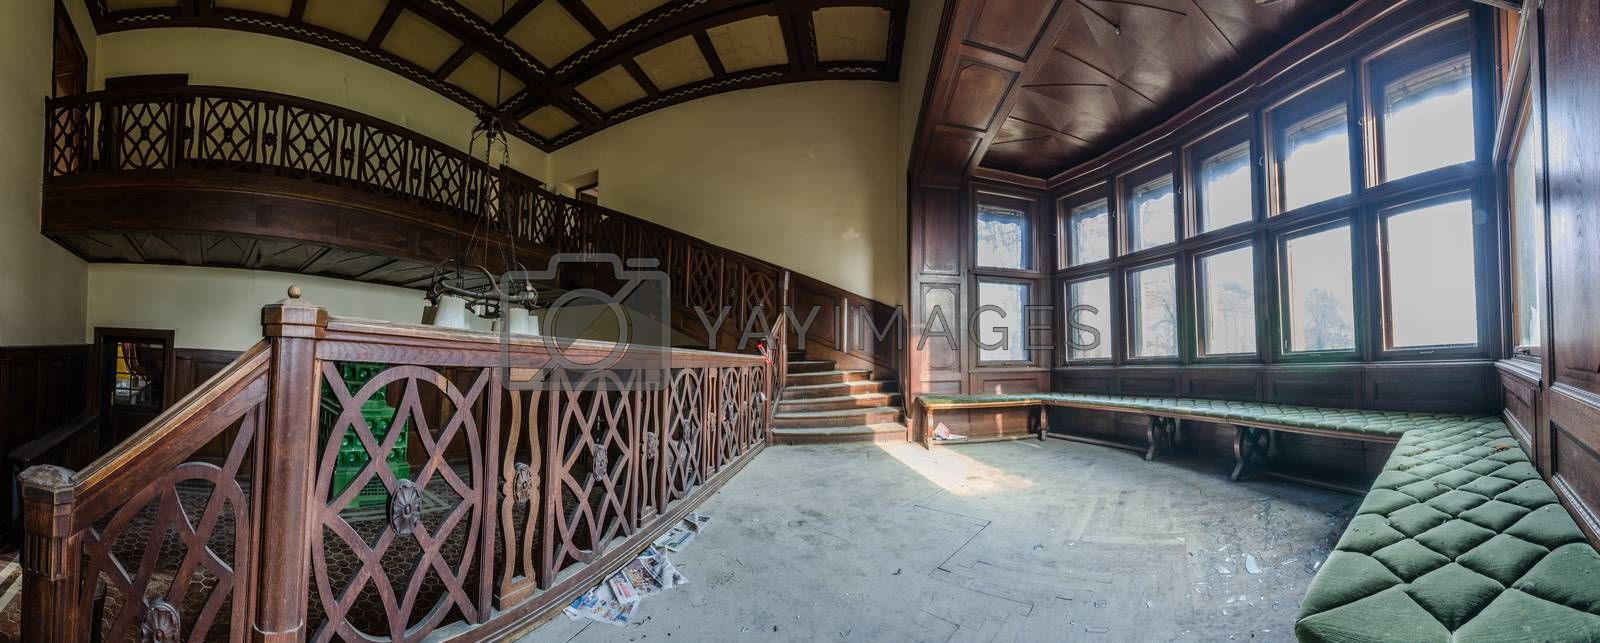 abandoned hunting lodge panorama view